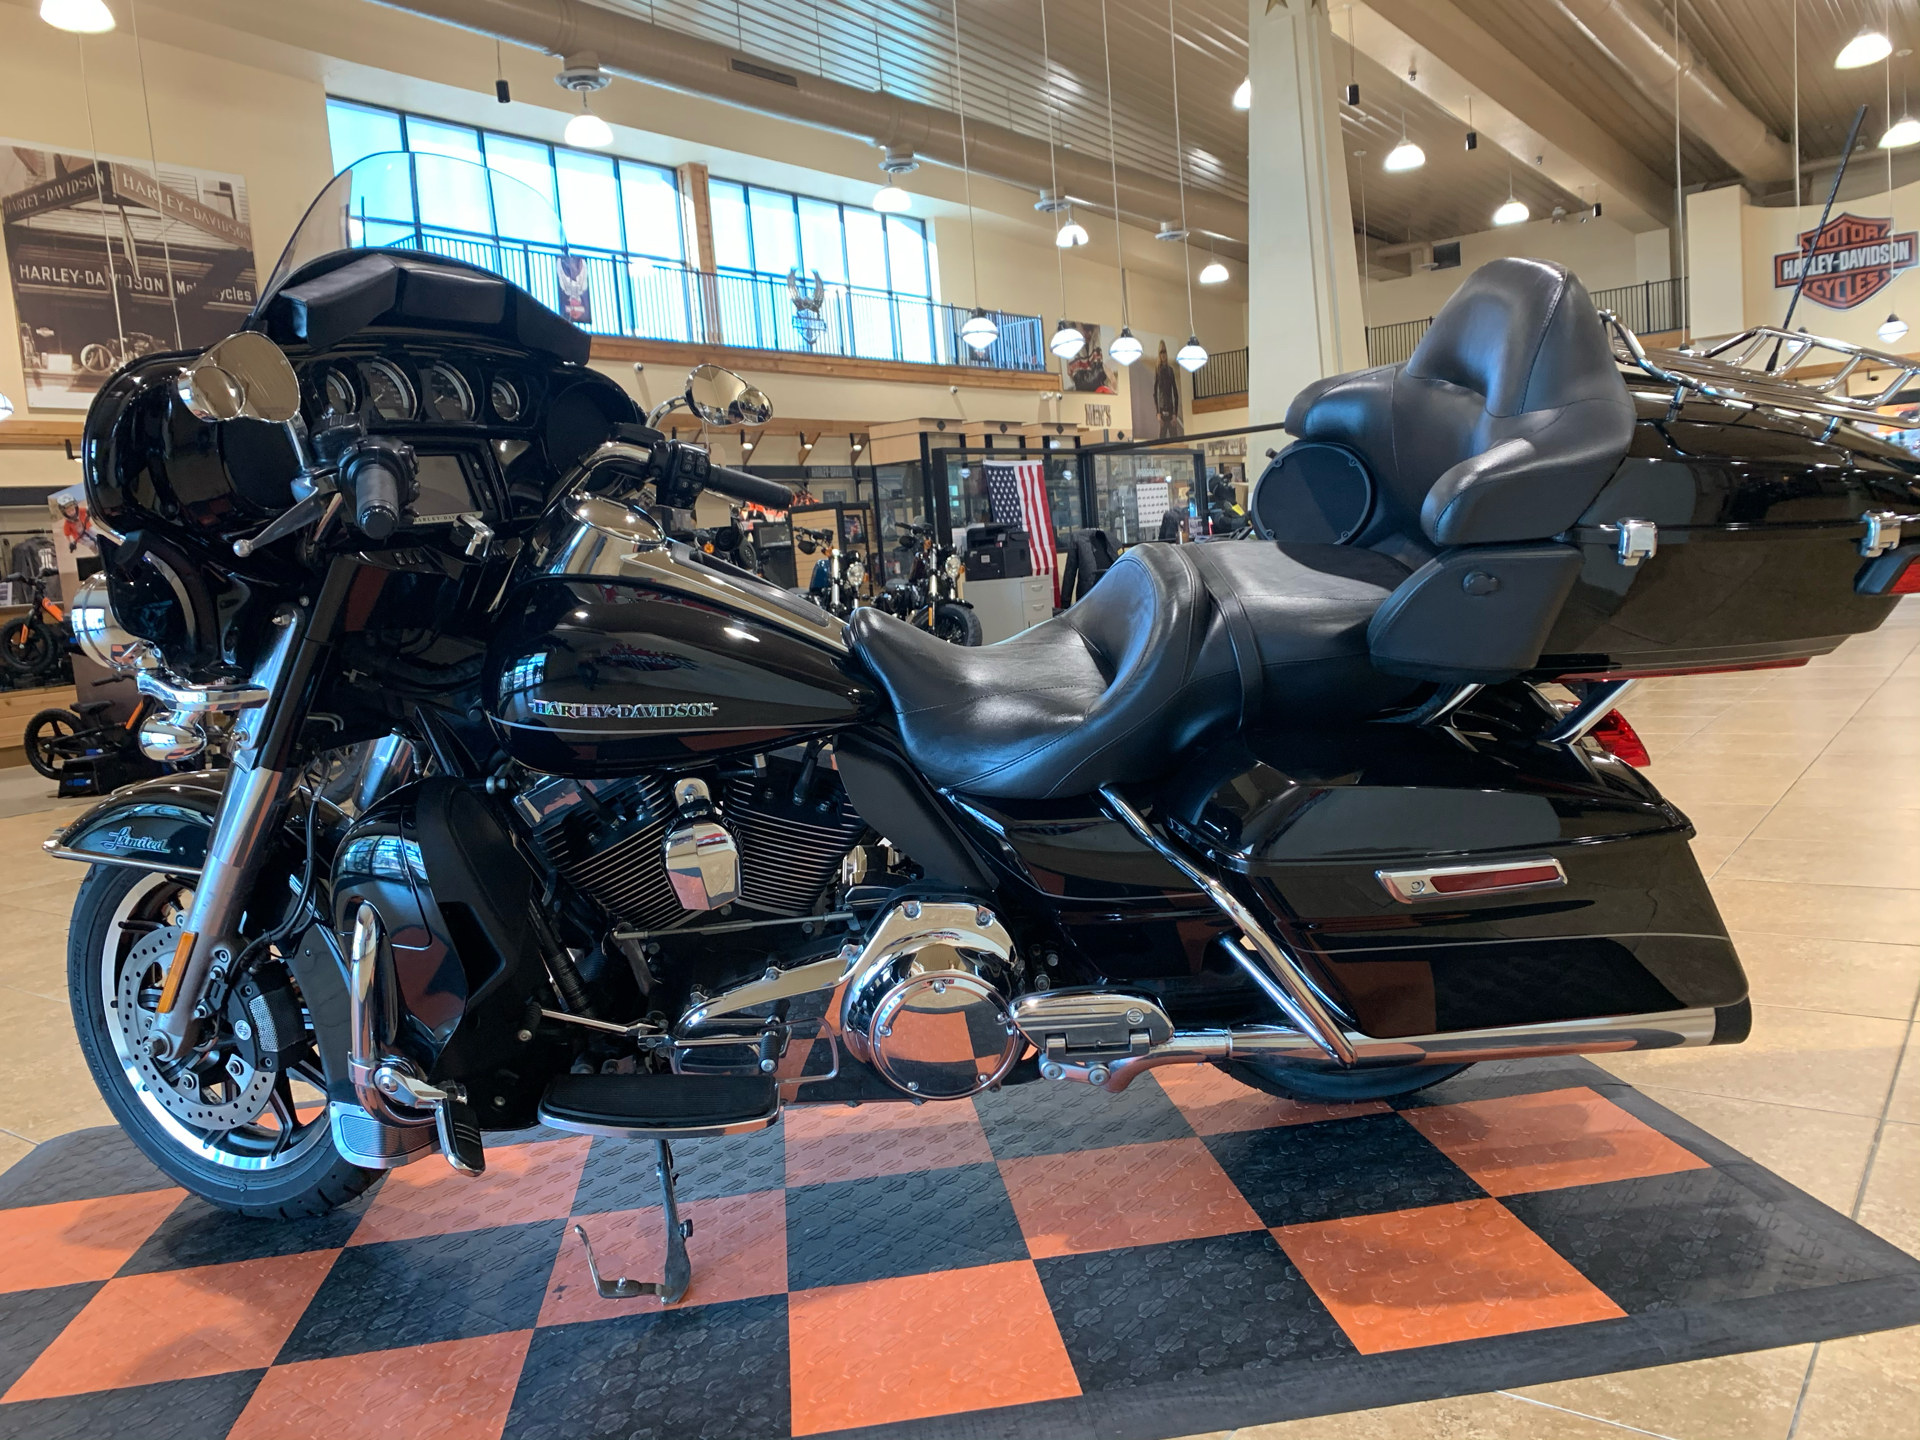 2014 Harley-Davidson ELECTRA GLIDE ULTRA LIMITED in Pasadena, Texas - Photo 4